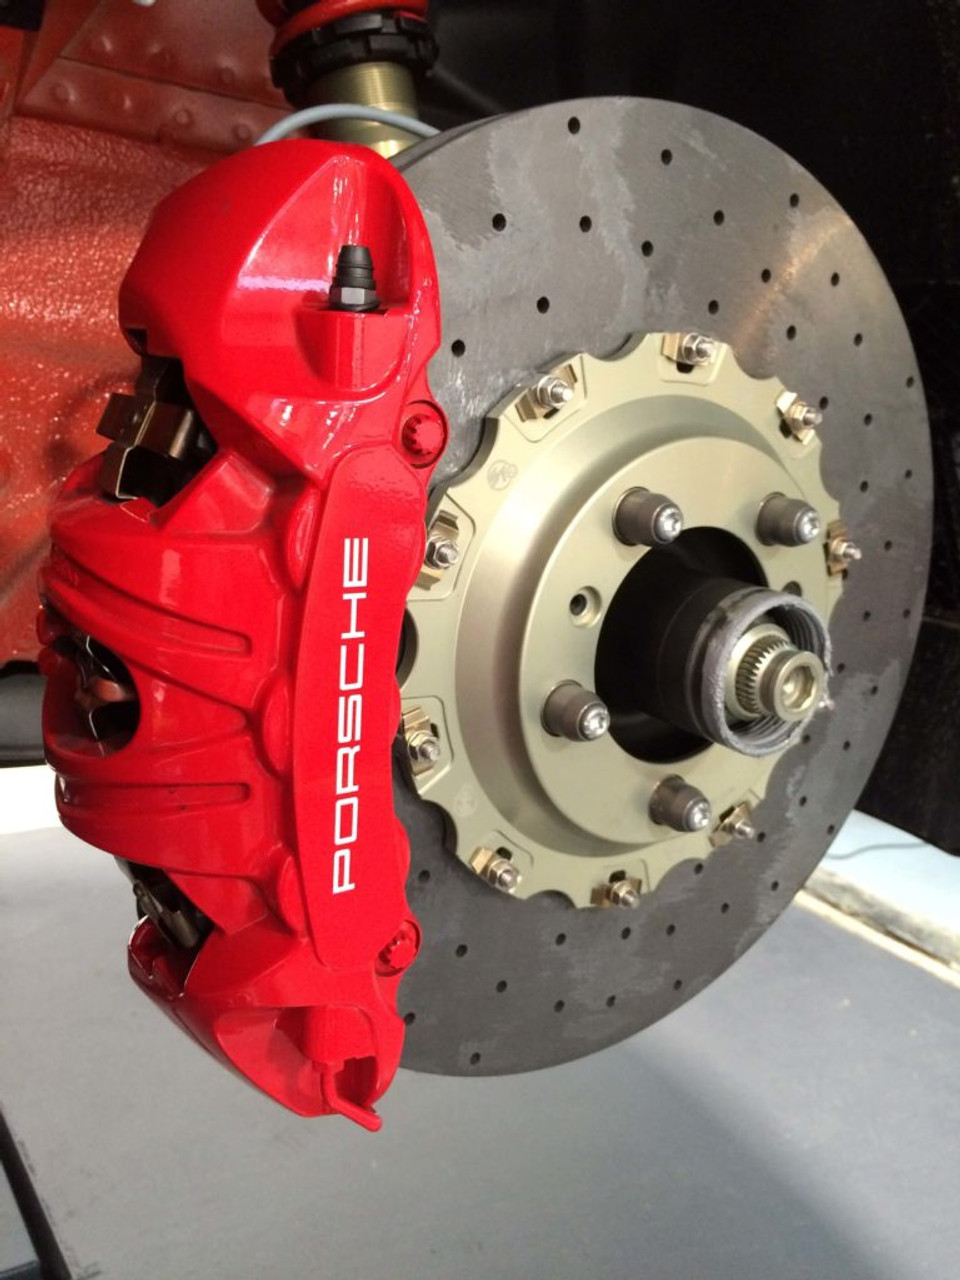 """CCST Carbon Ceramic  Brake Rotor Kit - 991 GT3/RS - Red Caliper -  with Track Pads:  STK.10.243.255 - Kit Consists of:  - CCST Fully Assembled 2-Piece Rotor/Discs:  410mm x 36mm (F) x 2 + 400mm x 32mm (R) x 2  - Mouning Kit:Brake lines for larger diameter disc (OE Porsche parts)  - Brake Pad Set Front and Rear  - Includes Free Shipping in Continental / USA. In stock kits usually ship same day or within 48 hours.     RSS is proud to bring you the latest in Carbon Ceramic Brake Rotor Technology. CCST (Carbon Ceramic Surface Transform) Carbon Brake Discs are direct upgrade/replacement for Porsche PCCB and Porsche Steel Disc Brake Rotors.  CCST Carbon Ceramic Discs feature next generation """"Continuous Fiber Construction"""" - Patented Processvs Traditional Chopped Fiber Construction. Manufactured in the United Kingdom at ISO/TS16494 certified facilities and are strictly controlled to the highest standards.  CCST Discs are the choice of OEM Partners and Super Car / Hyper Car Manufactures such as: Aston Martin, Mono, Koenigsegg, Singer Vehicle Design in addition to several other OEM's who prefer anonymity. CCST rotors provide the ultimate in braking technology for motorsport such as the European Ferrari 458 Challenge, road-going hyper-cars and super-cars.  CCST Kits - Now Available for Porsche  •Porsche 981 Cayman GT4  •Porsche 991 GT3  •Porsche 991 GT3 RS  •Porsche 991 Turbo  •Porsche 991 Turbo S  •Porsche 991 Turbo  •Porsche 997 GT2  •Porsche 997 GT3  •Porsche 997 GT3 RS  •Porsche 997 Turbo  (993 Turbo Coming Soon!)  CCST - Carbon Ceramic Rotors vs. OEM – PCCB Carbon Ceramic Brakes & Current Generation Ceramic Rotors  PERFORMANCE + VALUE:  - Temperature Reductions of up to 150 Degrees Celsius/302 Degrees Fahrenheit  - Up to 3x thermal conductivity of current generation Carbon-Ceramic Matrix Discs (CCM)  - Weight Savings of up to 70% over Iron brakes  - 10x lifespan improvement vs current generation CCM Discs  - Better Vehicle Dynamics, improved handling and drivability  - R"""